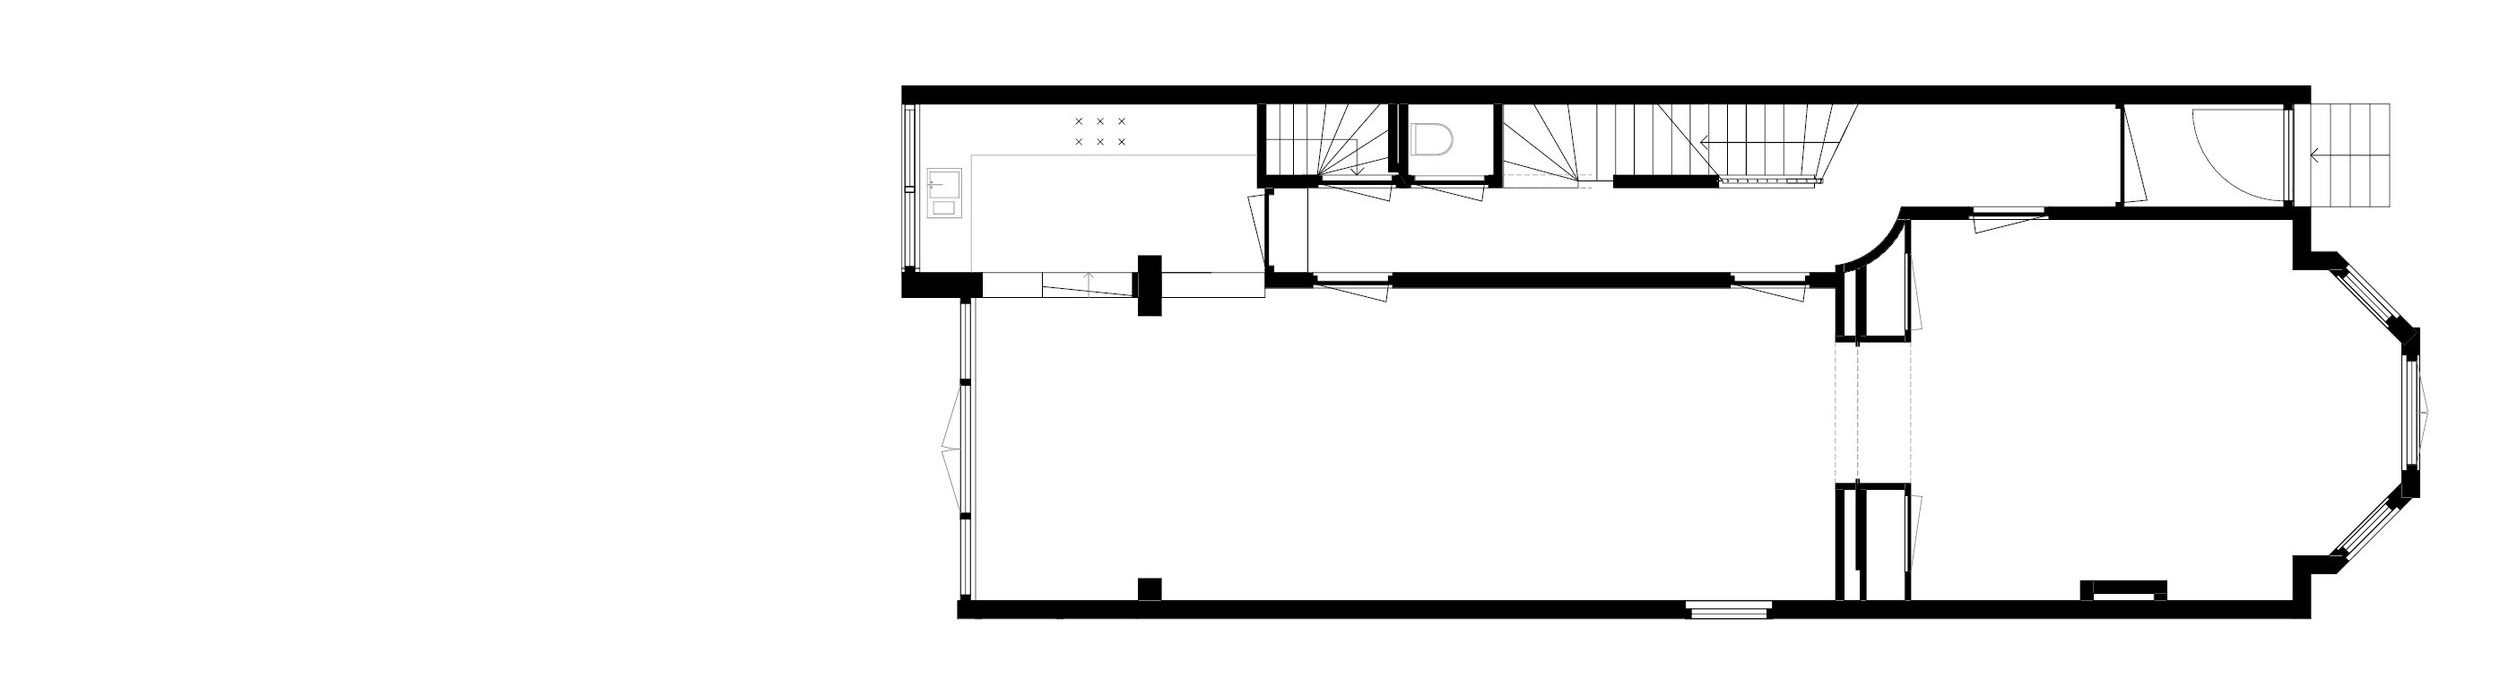 ground floor plan - situation prior to intervention